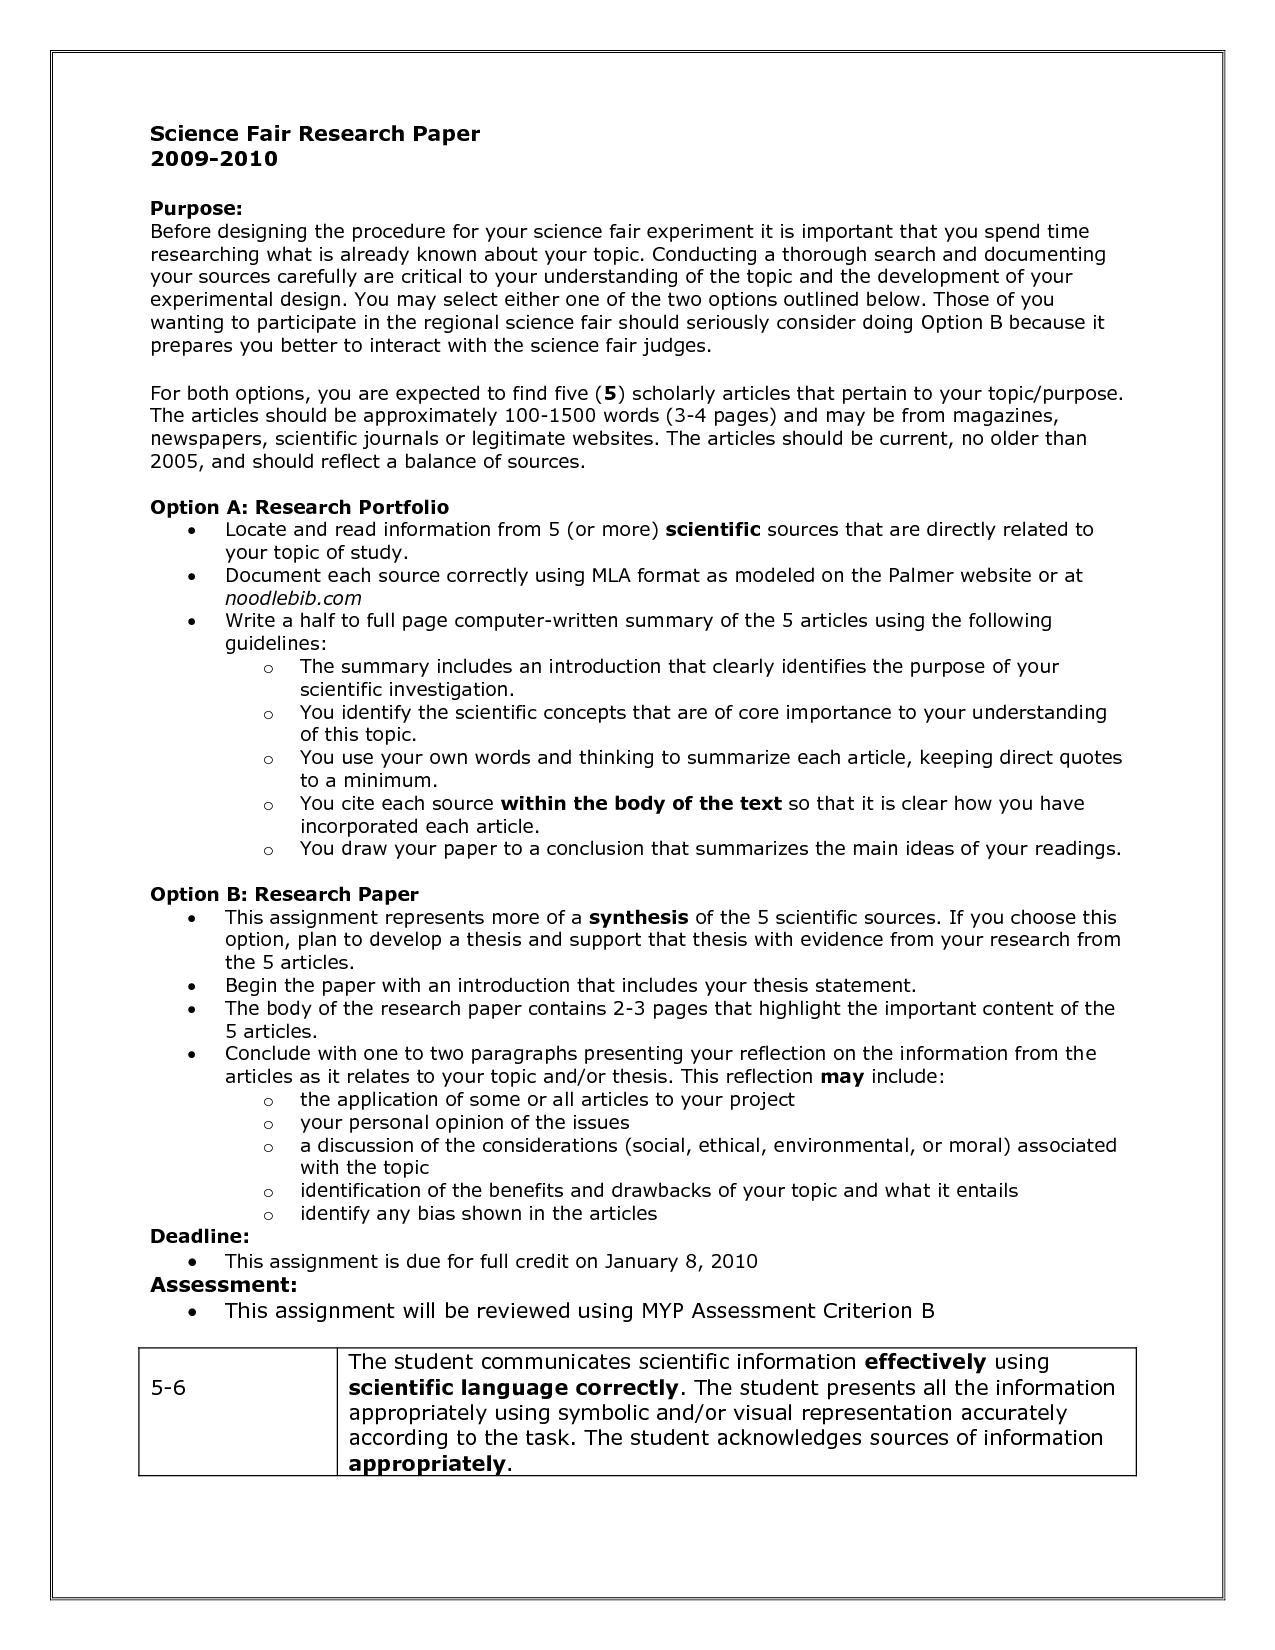 004 Best Photos Of Science Procedure Template Fair Essay Example L Research Paper What Is The Purpose Impressive A Conducting Critiquing Process Writing Full